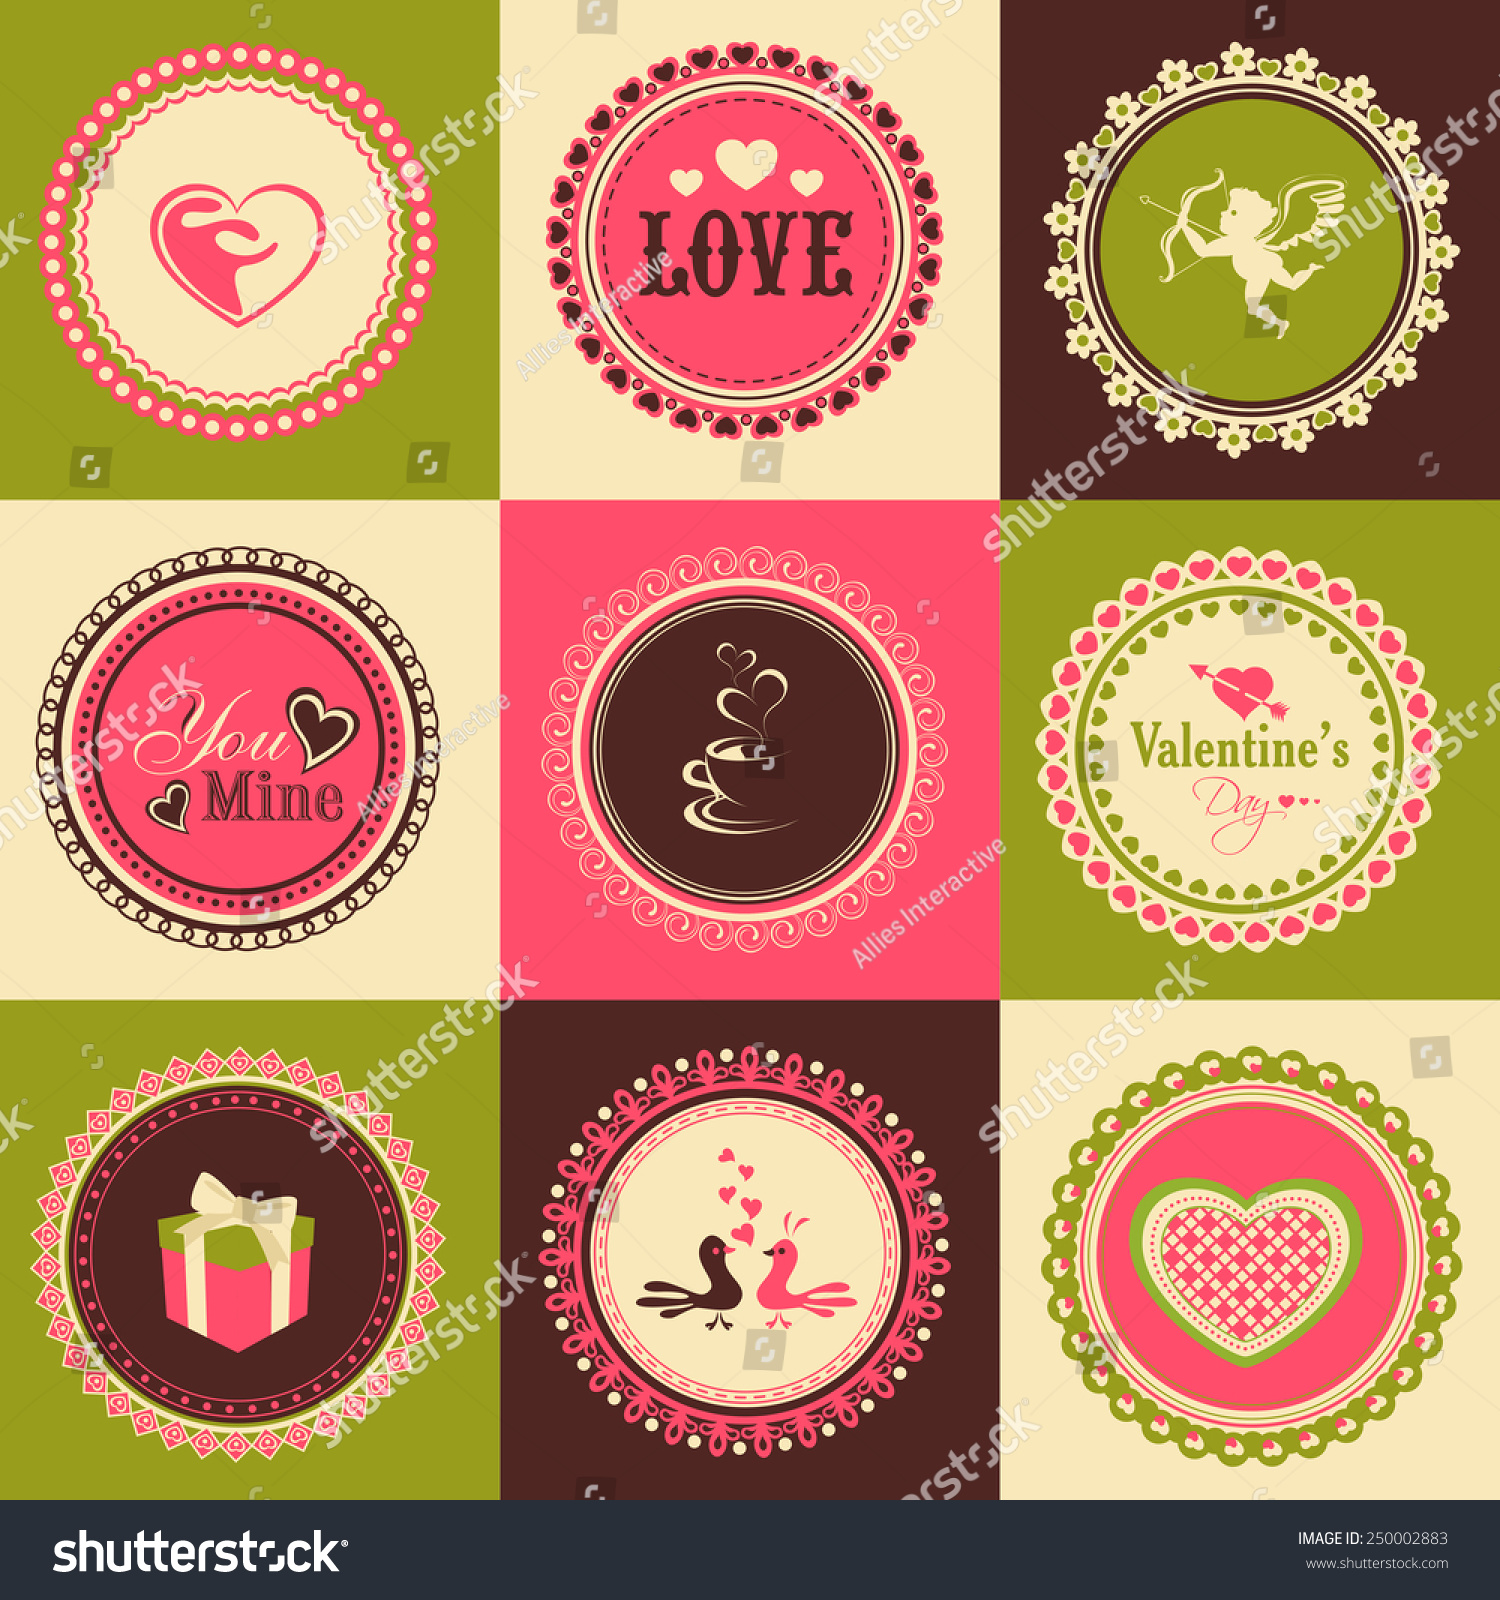 Set of beautiful stickers or labels design for happy valentines day celebration